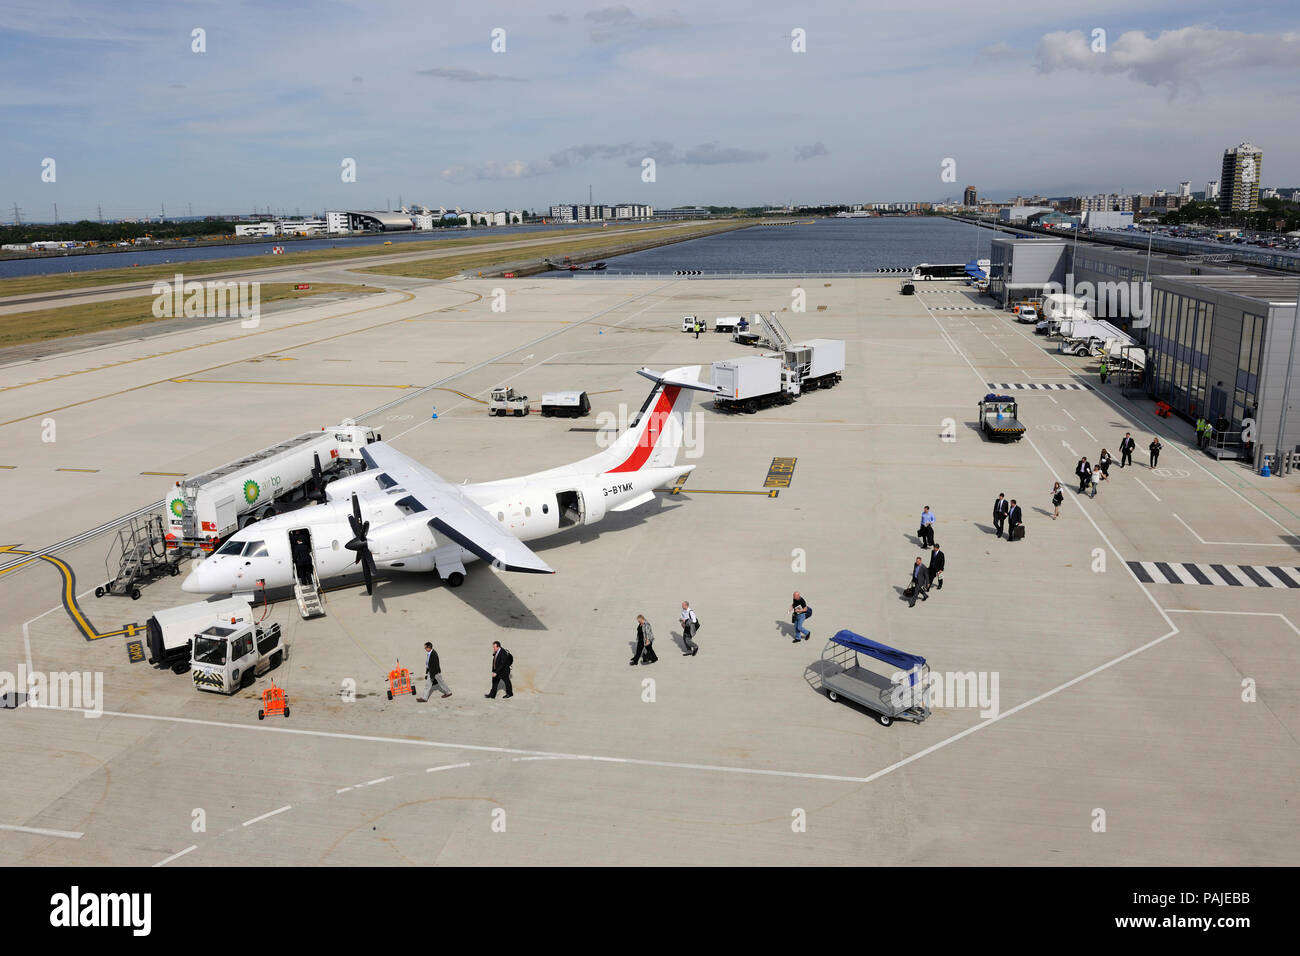 passengers with carry-on bags boarding a Scot Airways Dornier Do-328-100, tractor, Houchin ground power unit, Air BP refuelling bowser, baggage trolle - Stock Image